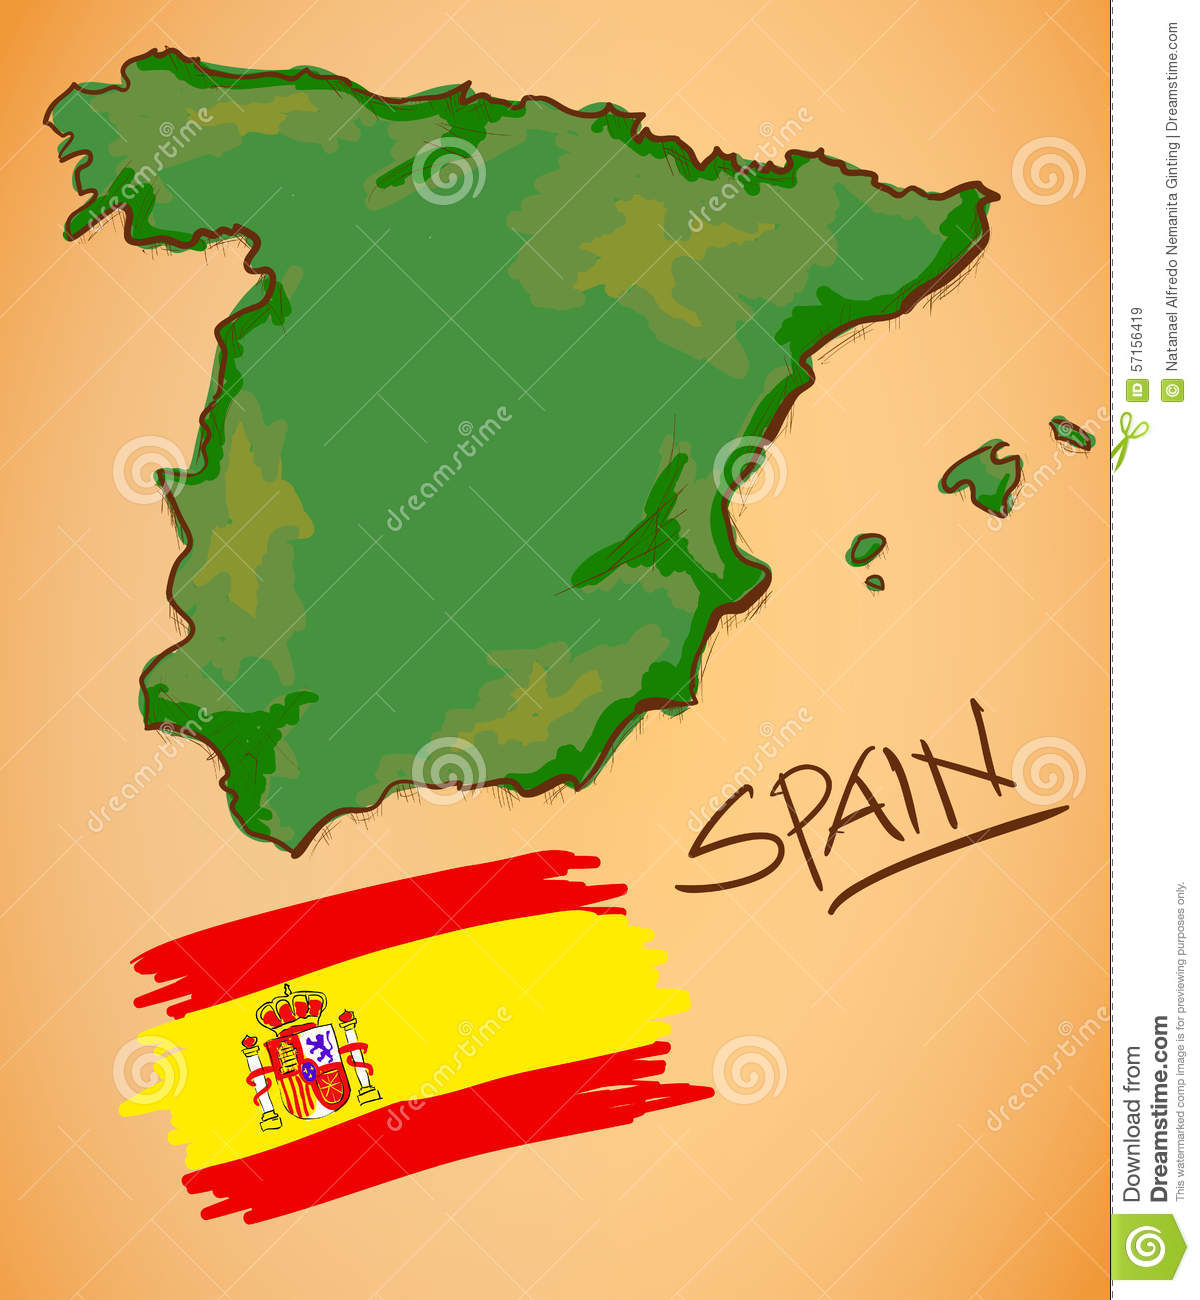 Spain Map Flag.Spain Map And National Flag Vector Stock Vector Illustration Of